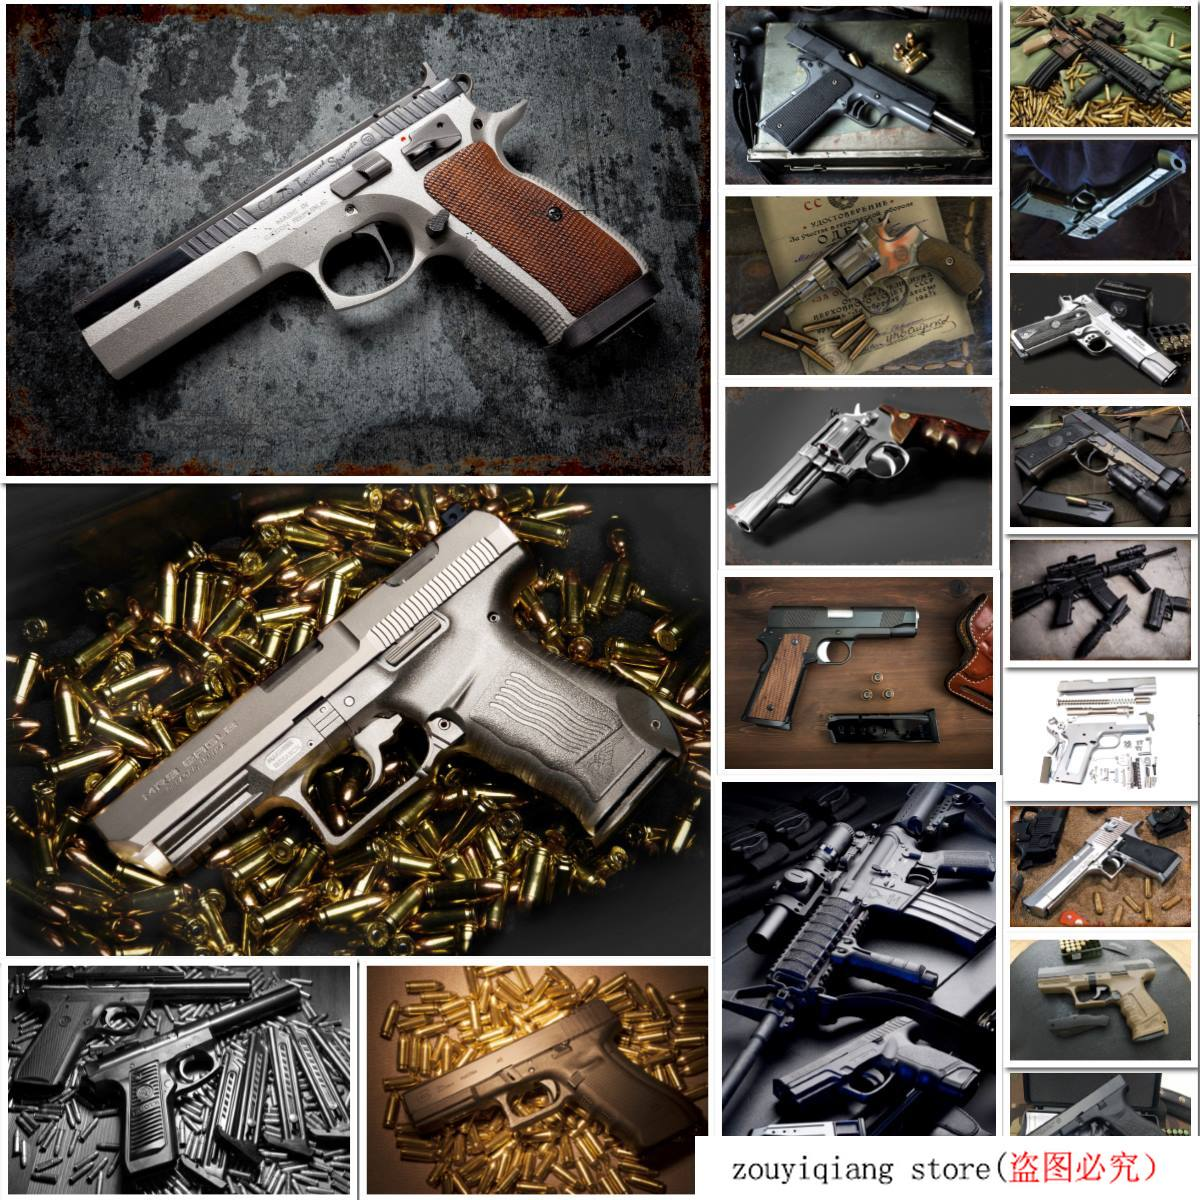 Dan Wesson Pistol Gun Tin Sign Metal Sign Metal Decor Wall Decor Vintage Metal Poster Plate Plaques Wall Sticker Iron Painting